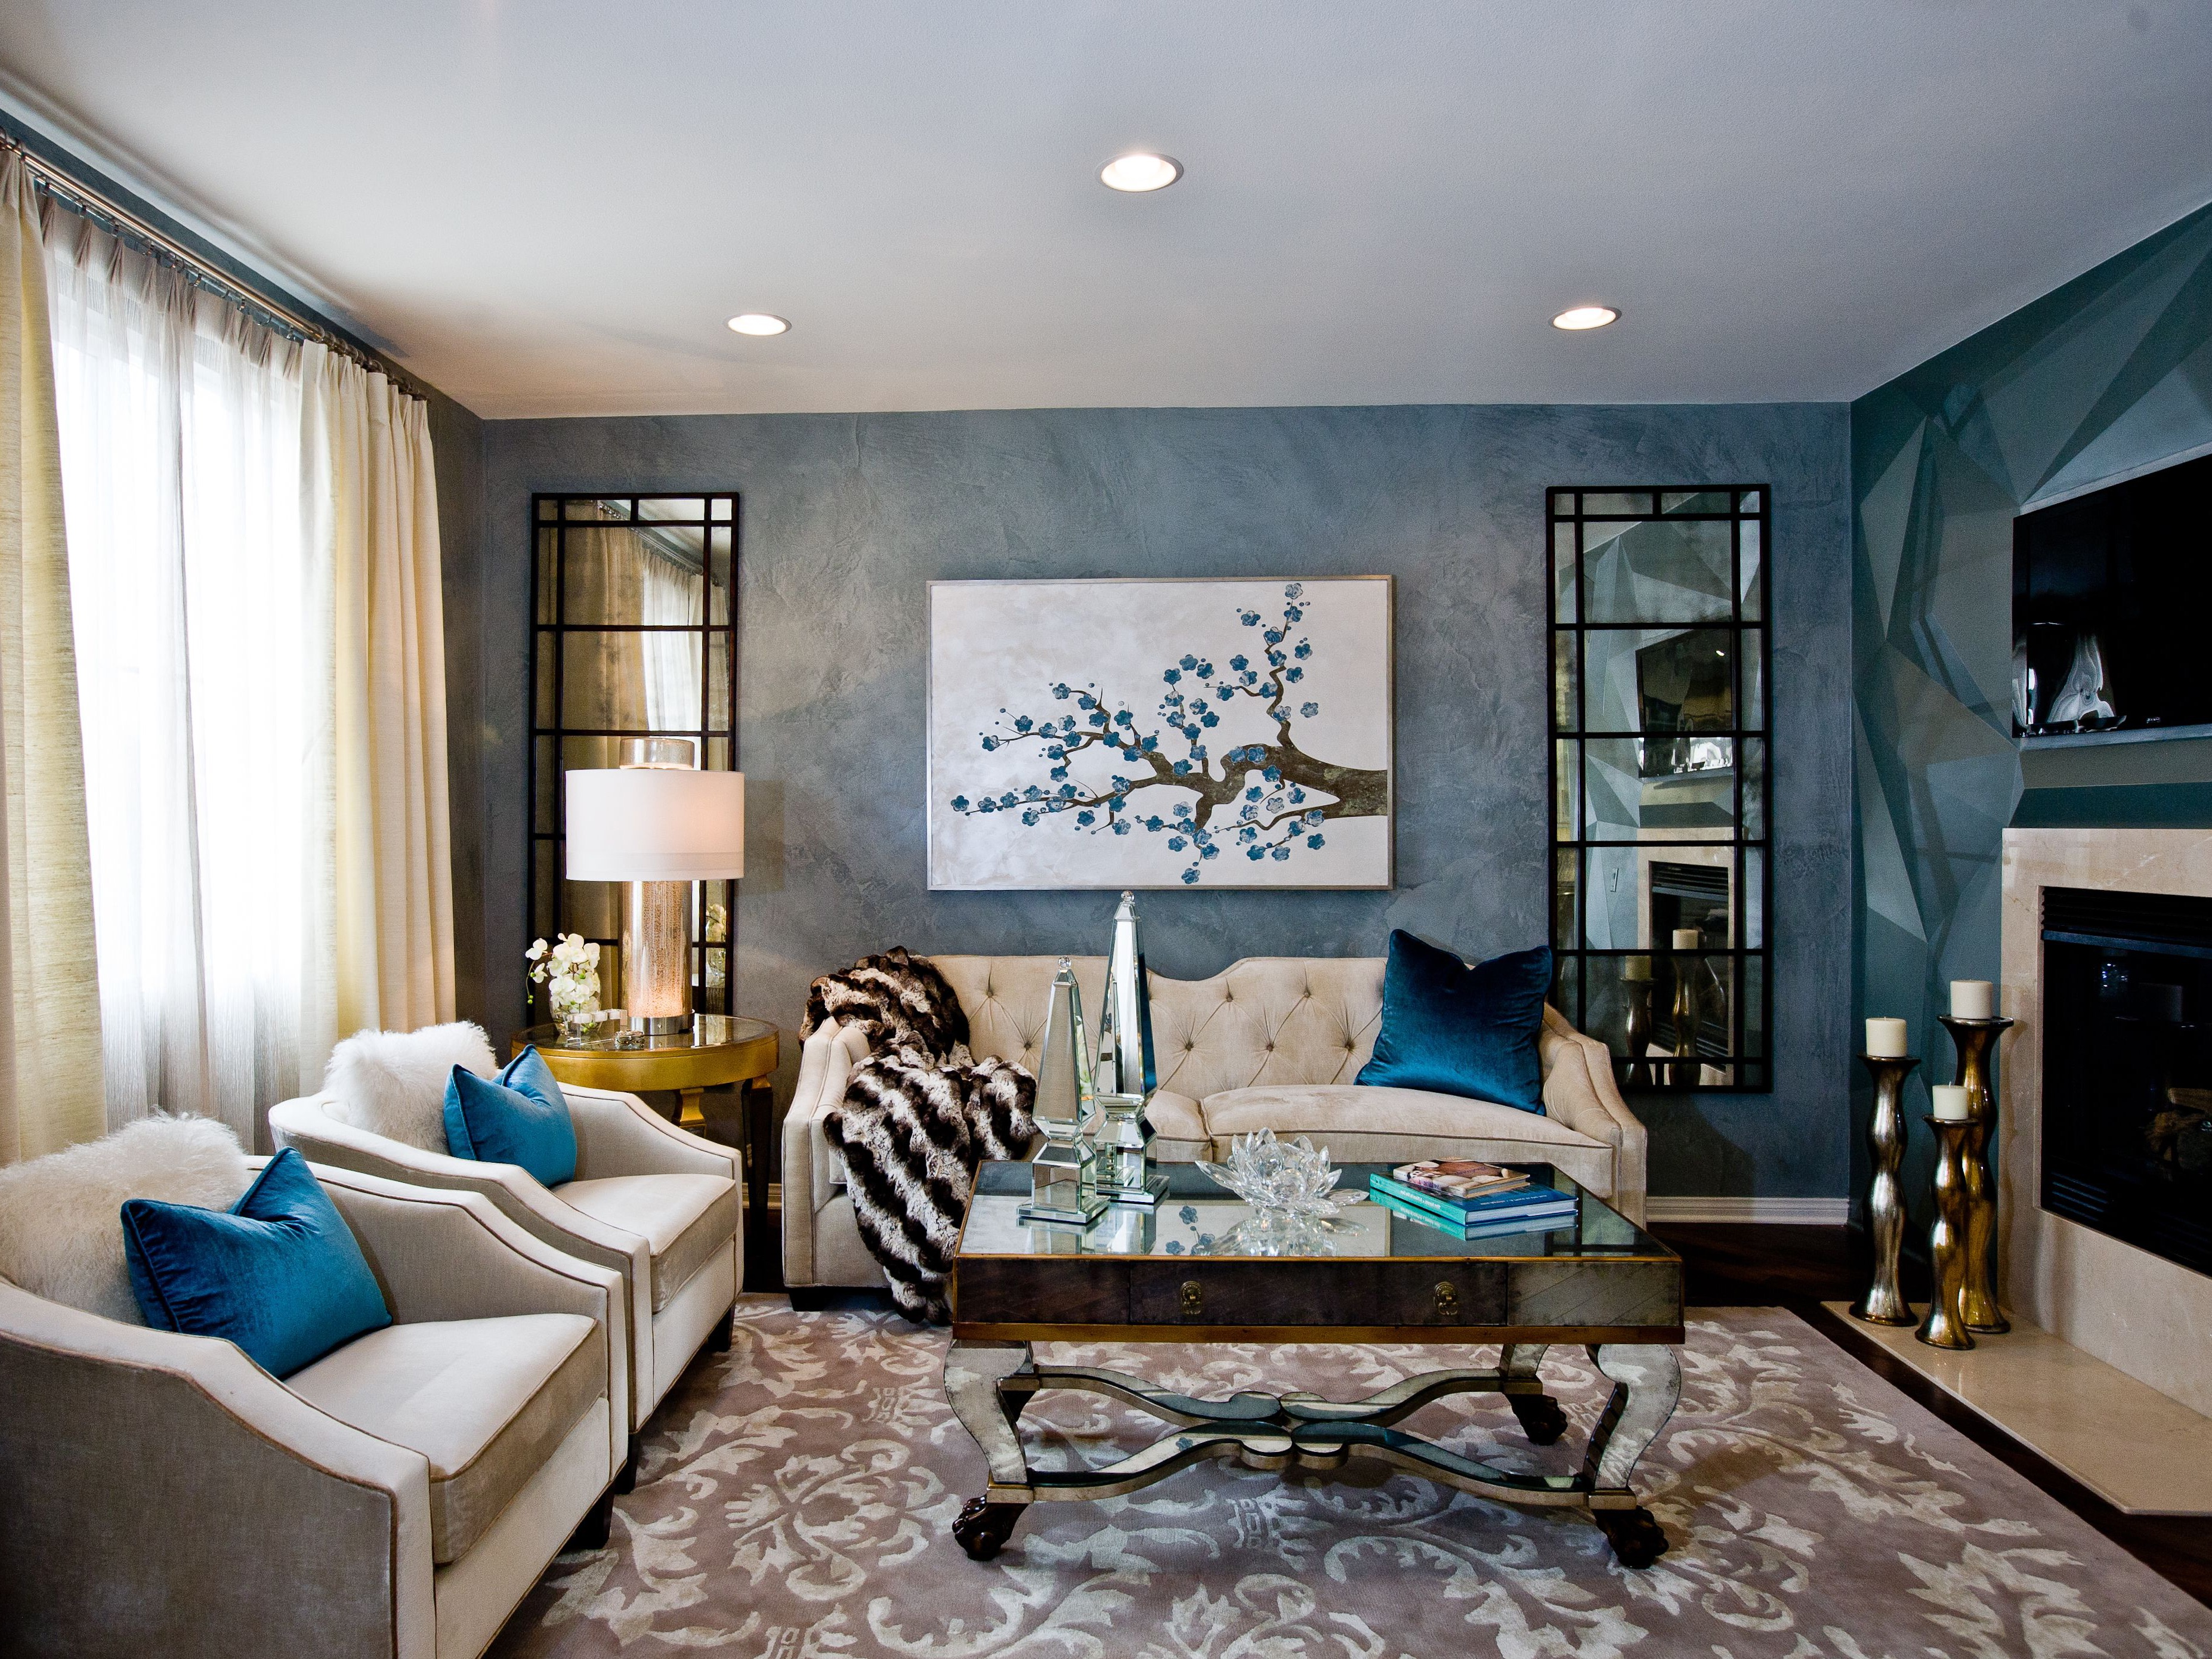 20 Art DecoInspired Living Room Design And Ideas 18354